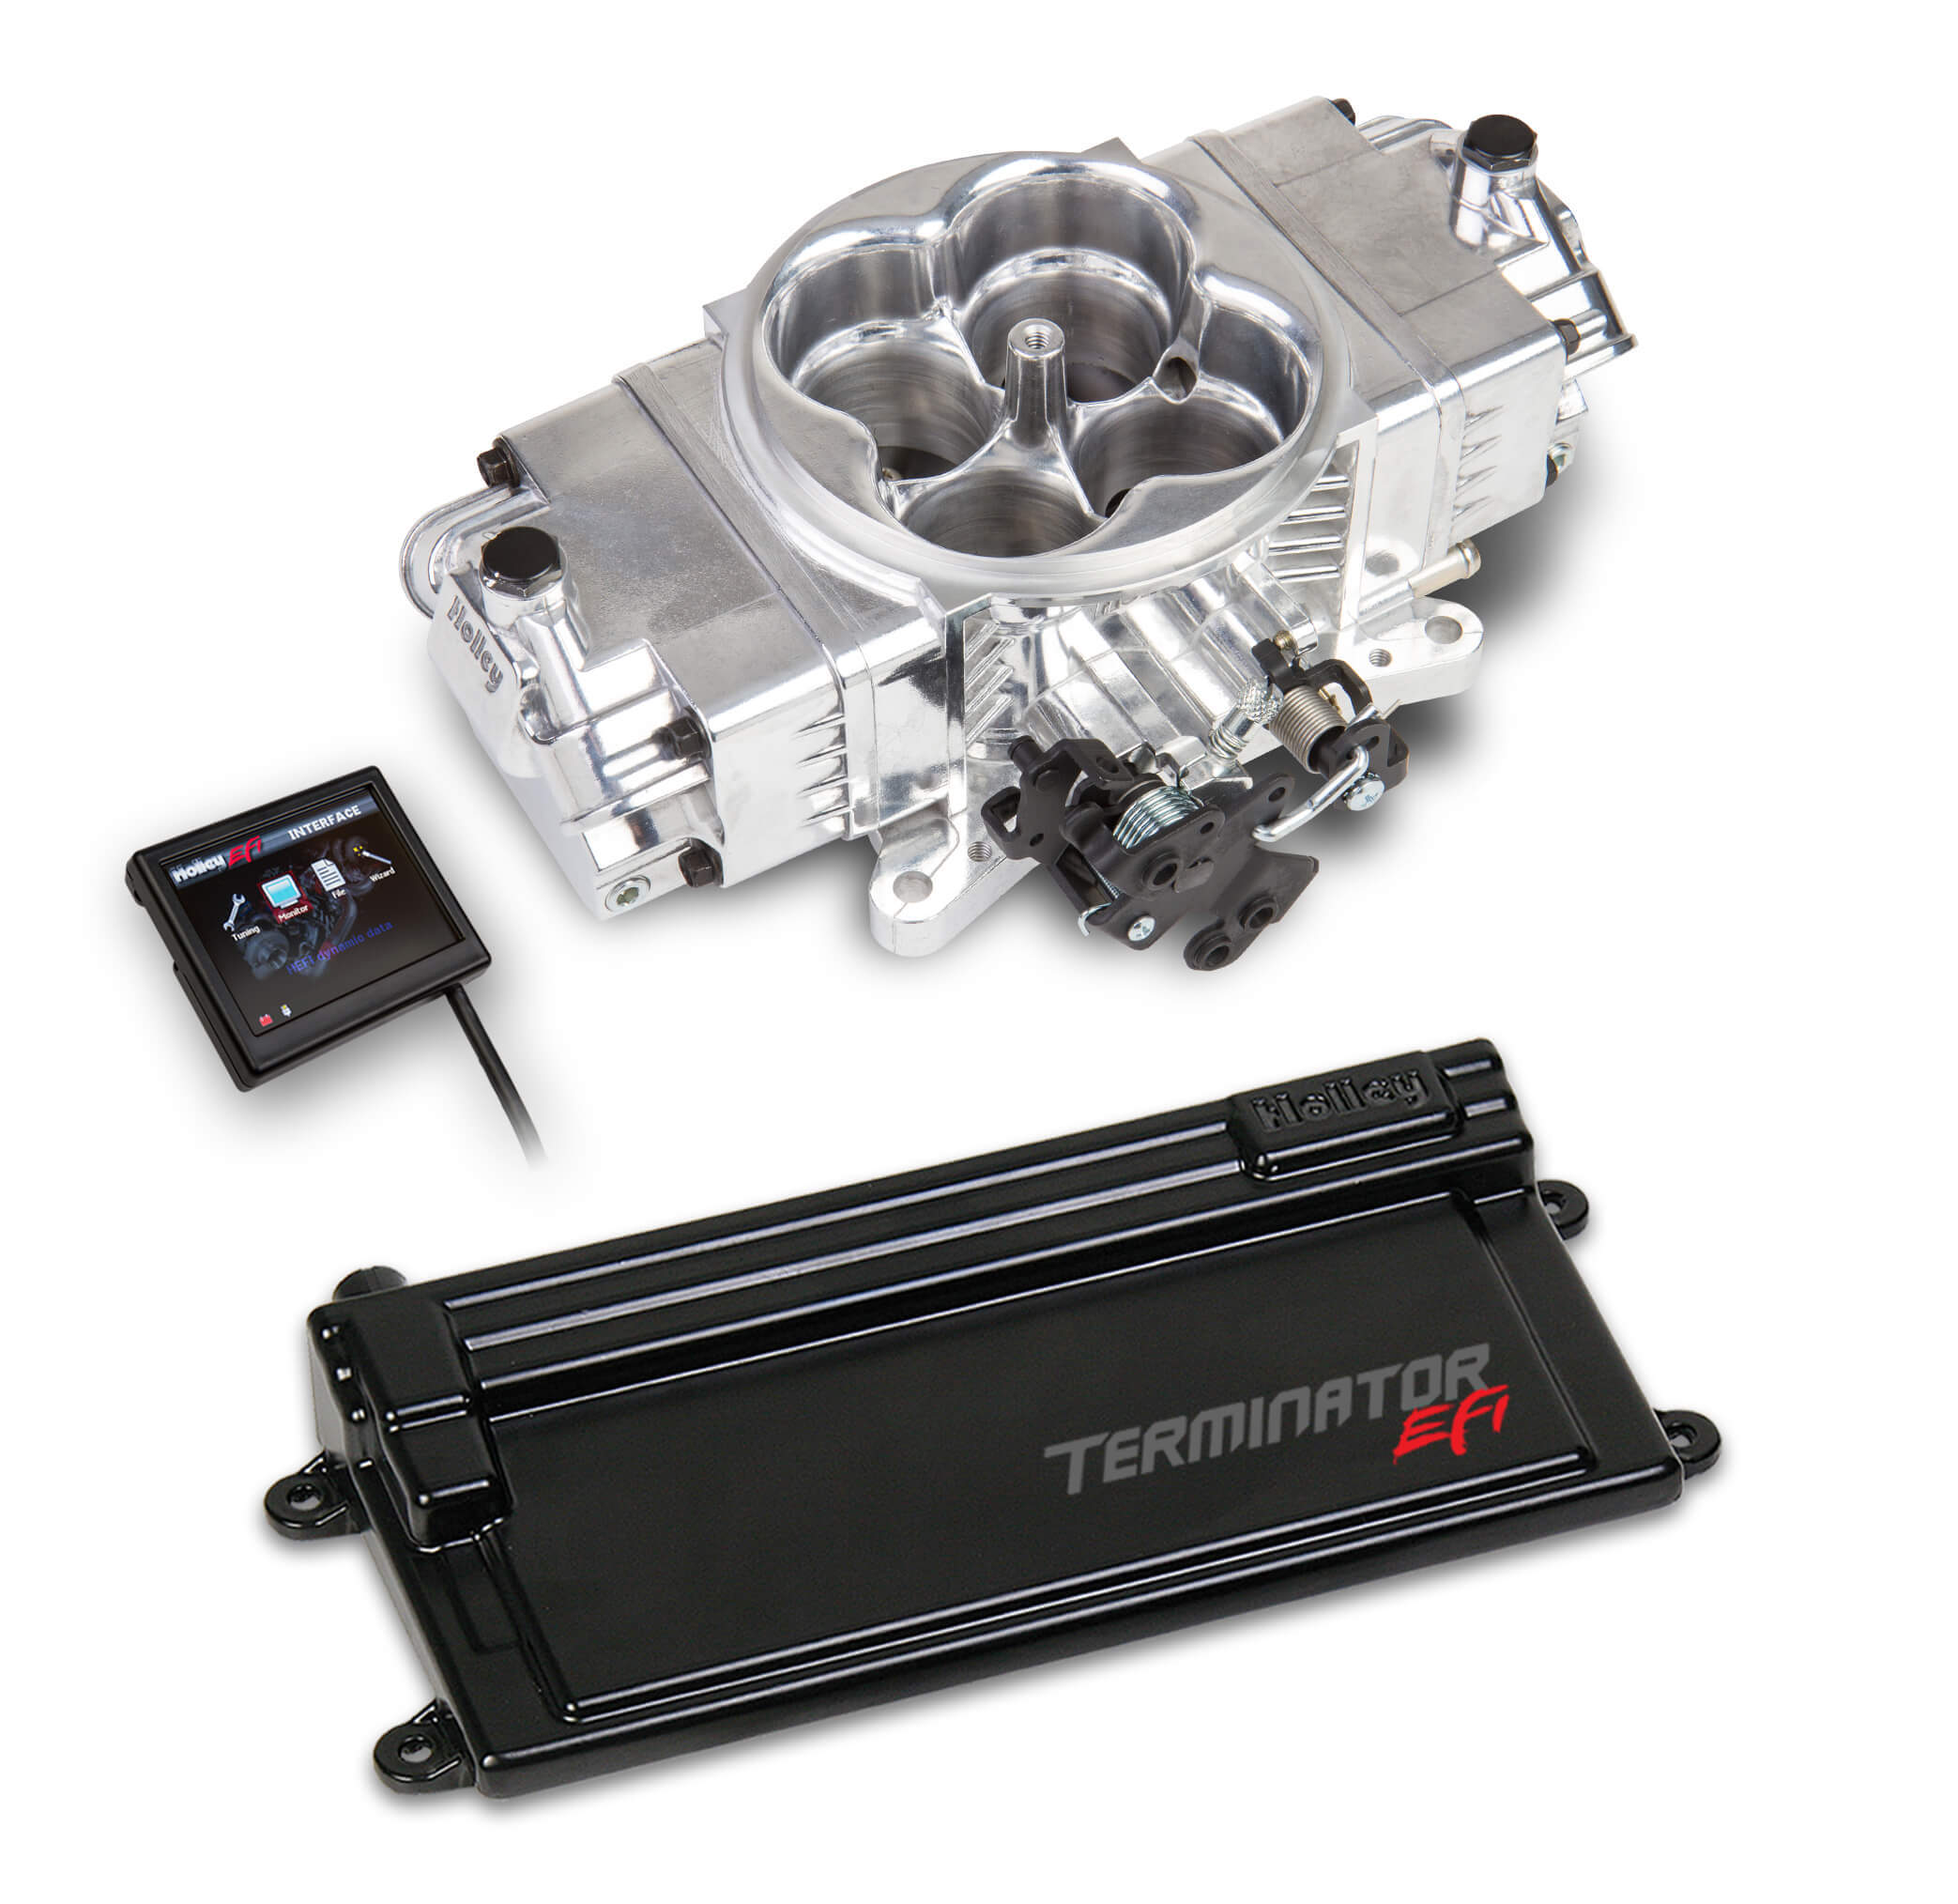 Holley 550-442 Fuel Injection, Terminator Stealth EFI, Throttle Body, Square Bore, 3.5 in Touch Screen/Transmission Harness/Tuner, Aluminum, Polished, V8, Kit